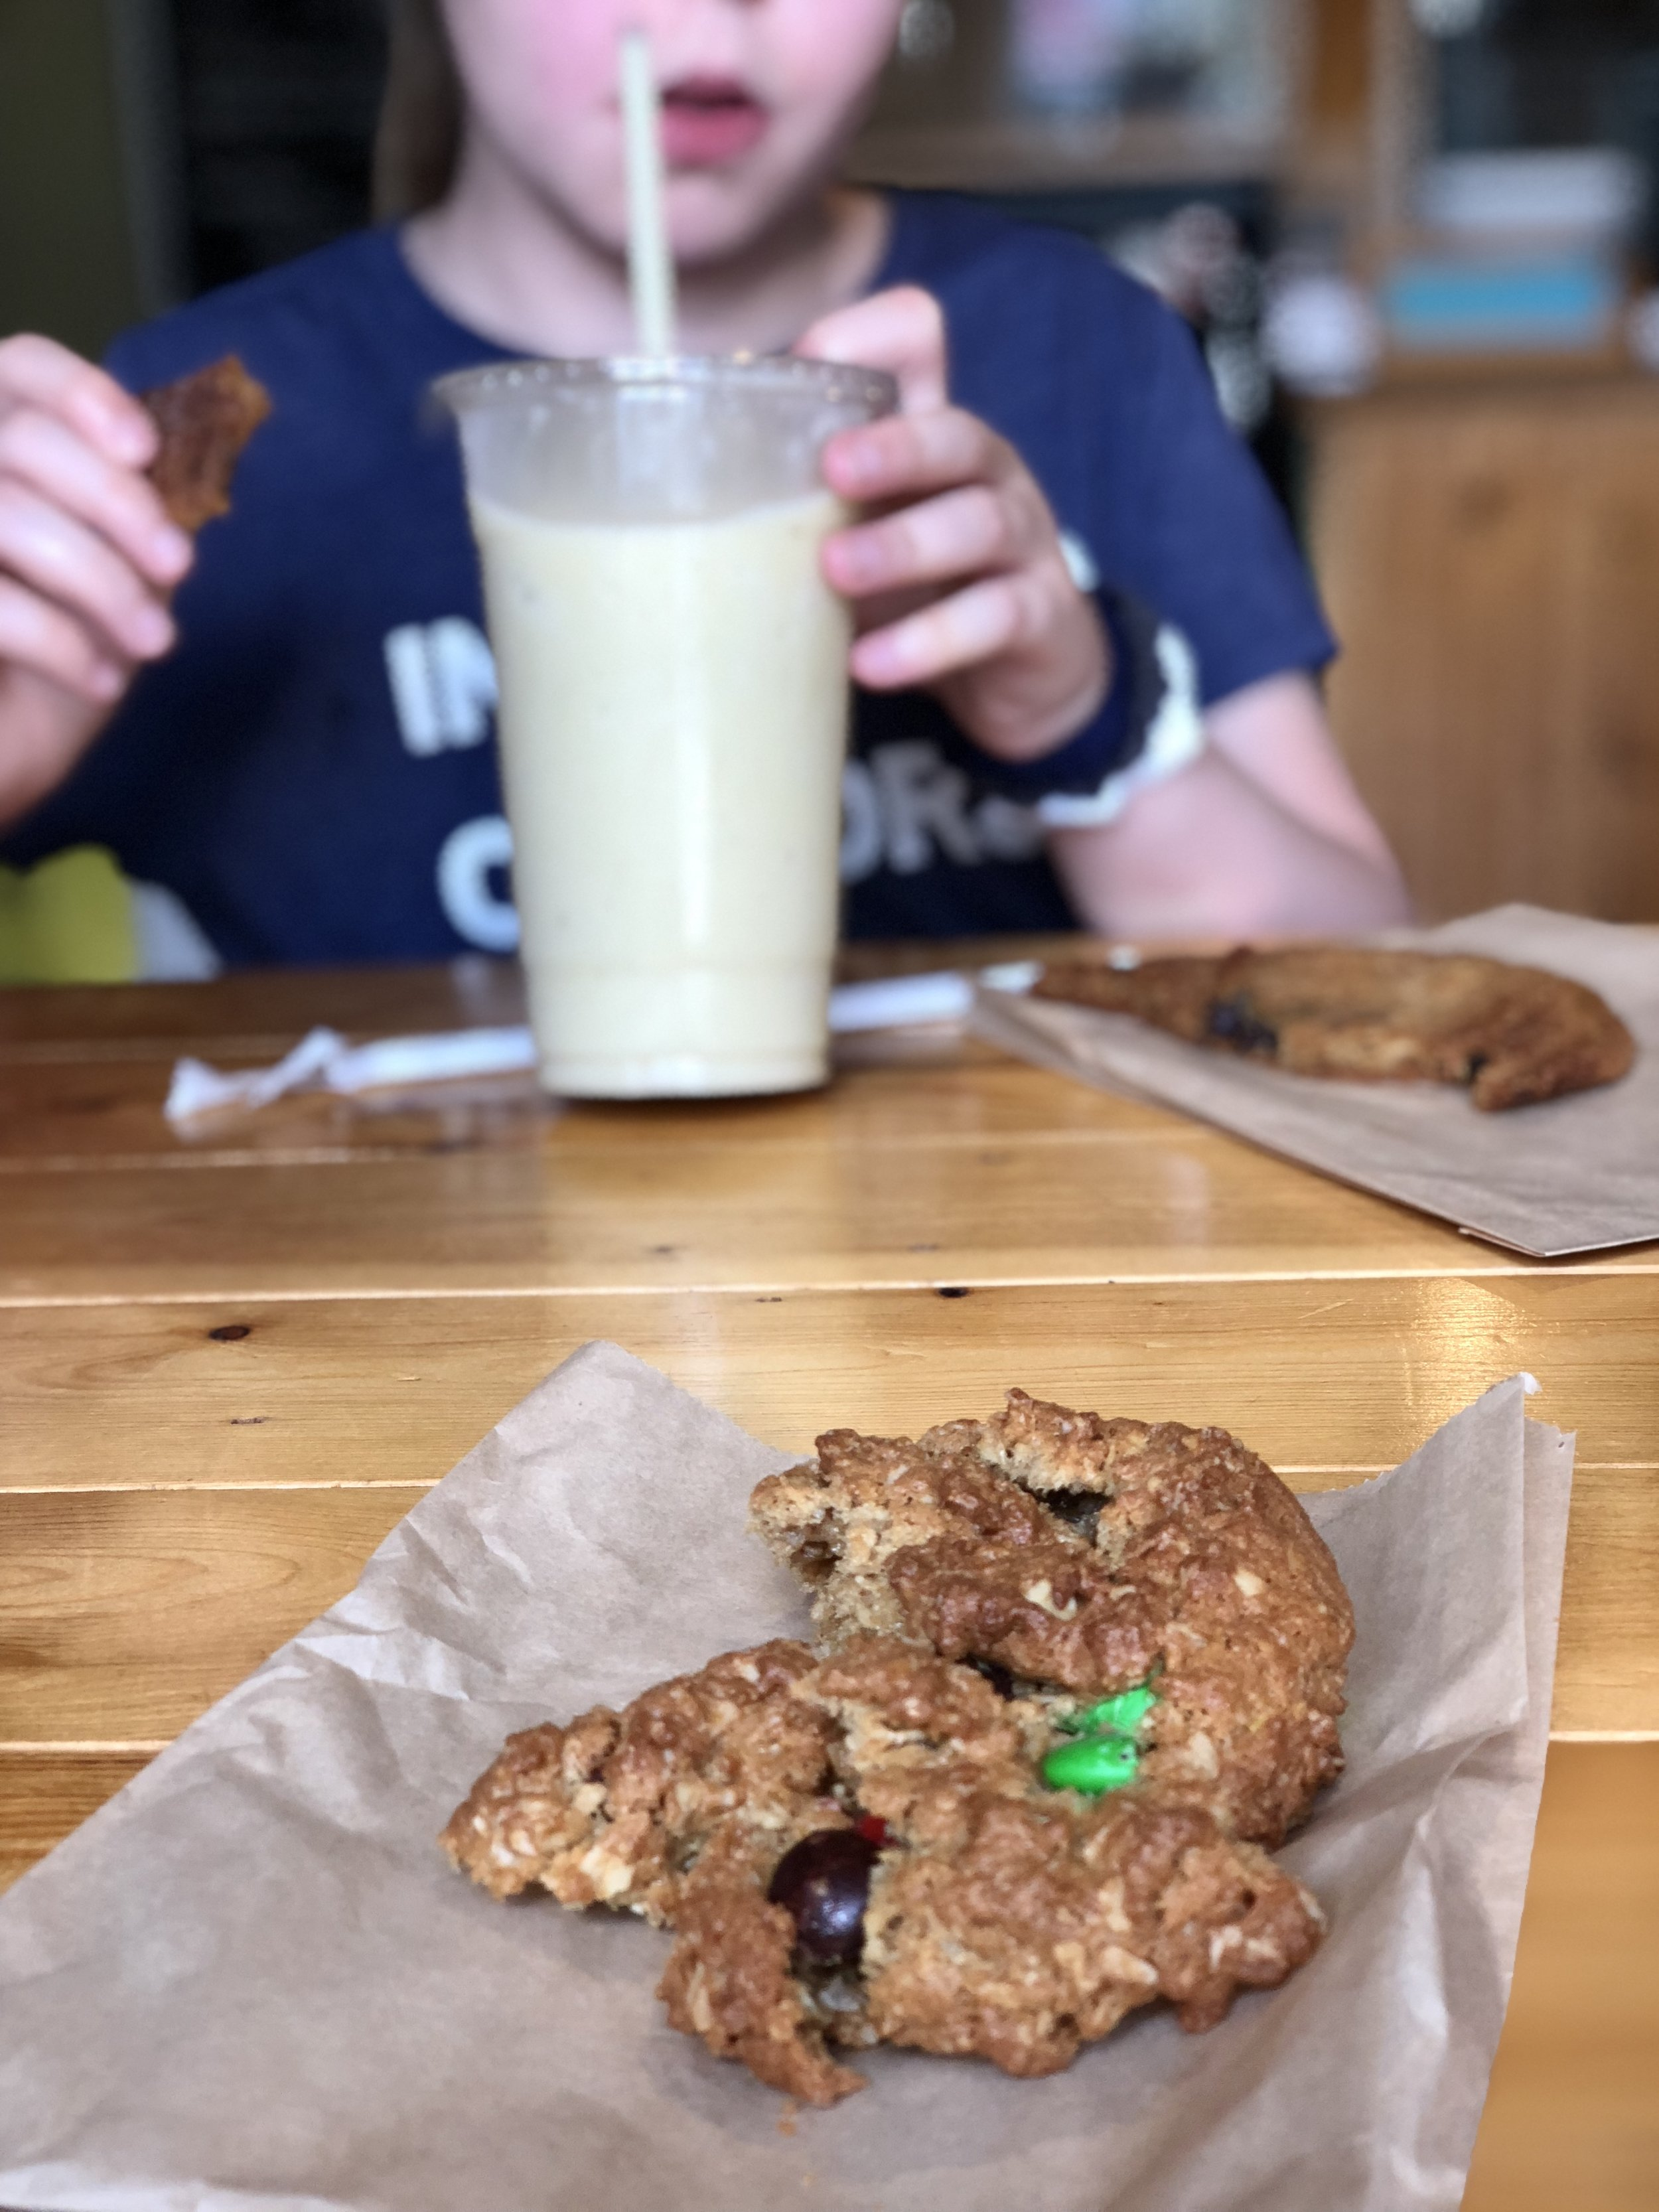 Pre-smoothie spill at Numinous Coffee Roasters where Kate had a regular chocolate chip cookie and I had a gluten-free kitchen sink cookie.  Such a fun new place to visit while we're in Marble Falls, TX.